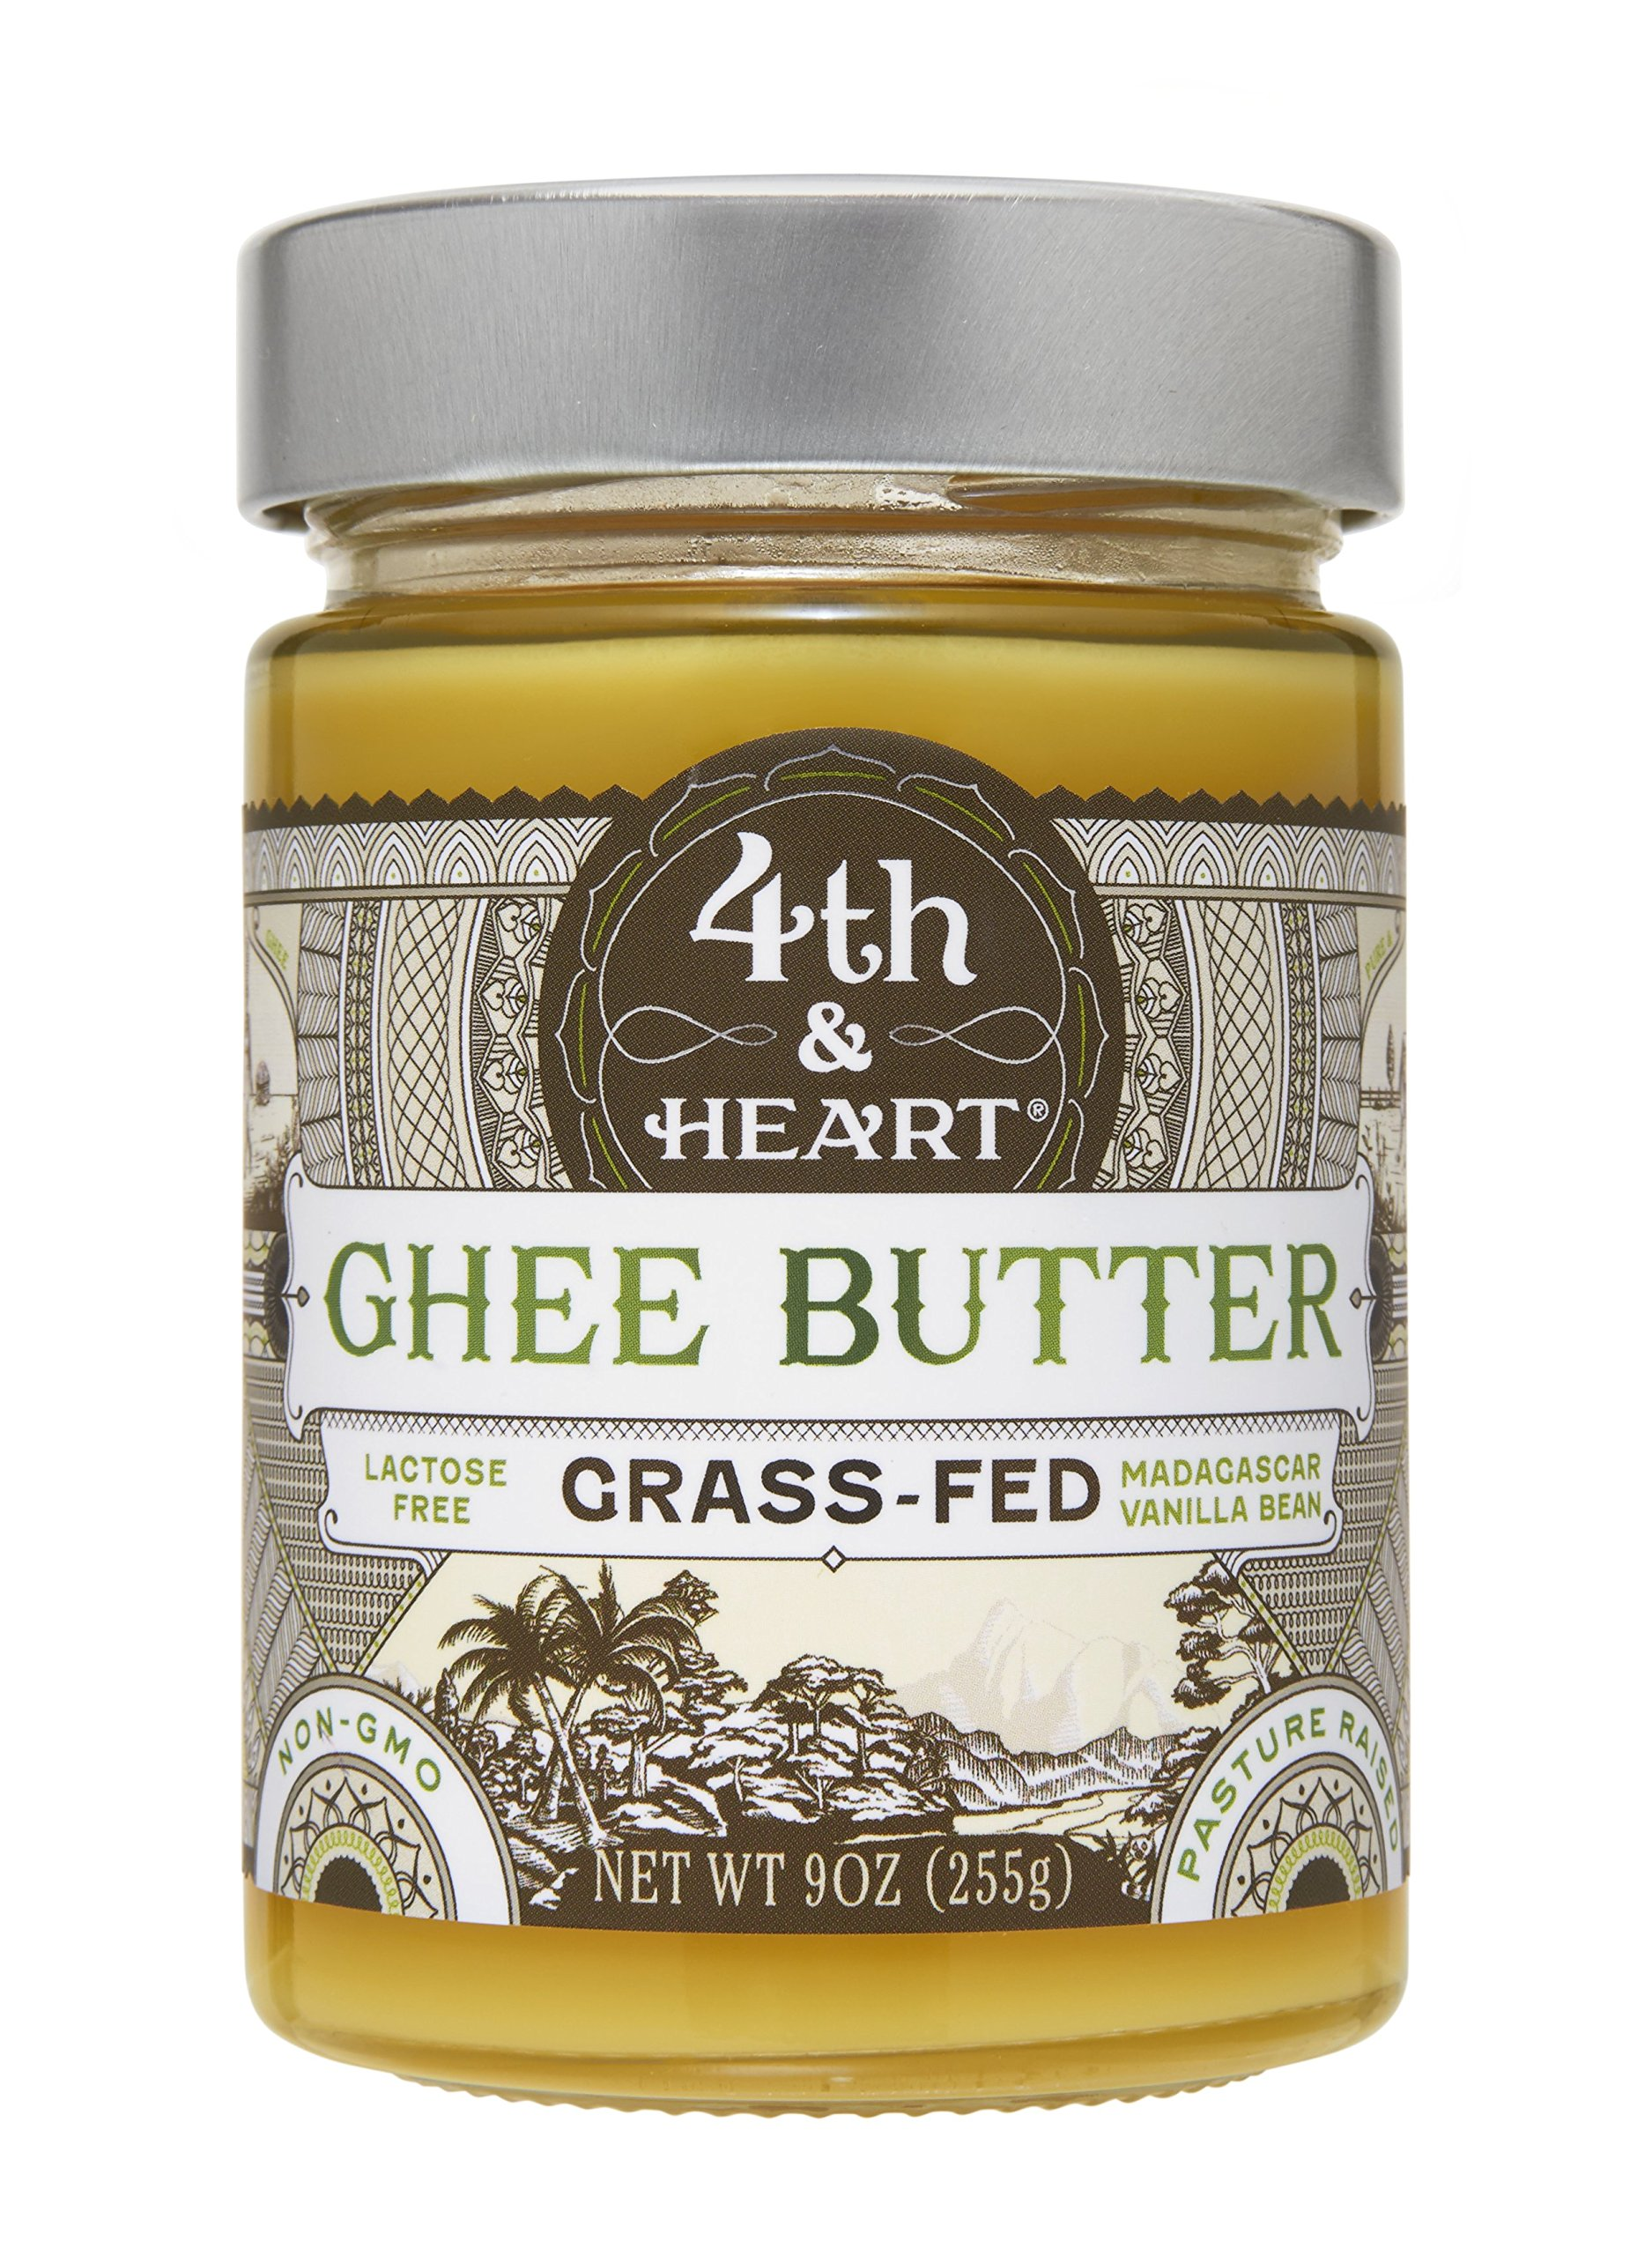 Vanilla Bean Grass-Fed Ghee Butter by 4th & Heart, 9 Ounce, Pasture Raised, Non-GMO, Lactose Free, Certified Paleo